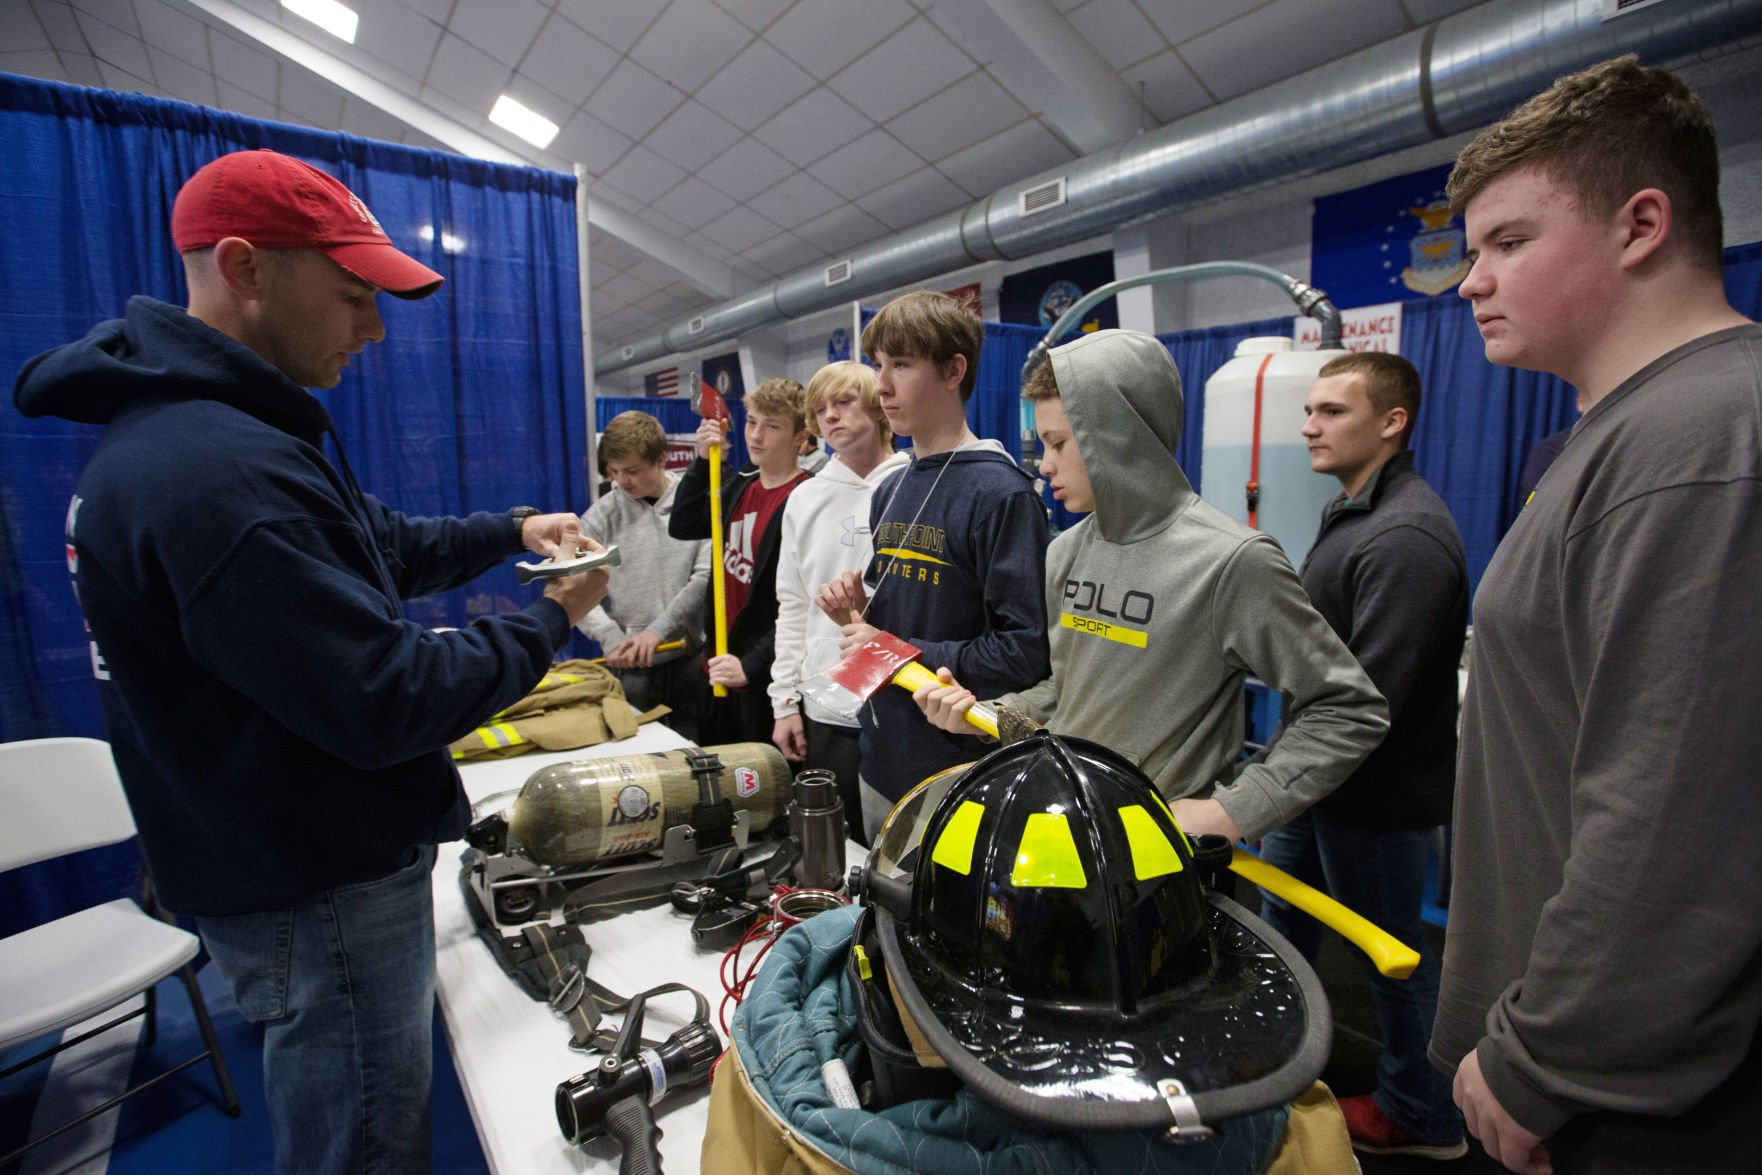 Marathon refinery hosts career fair for Tri State